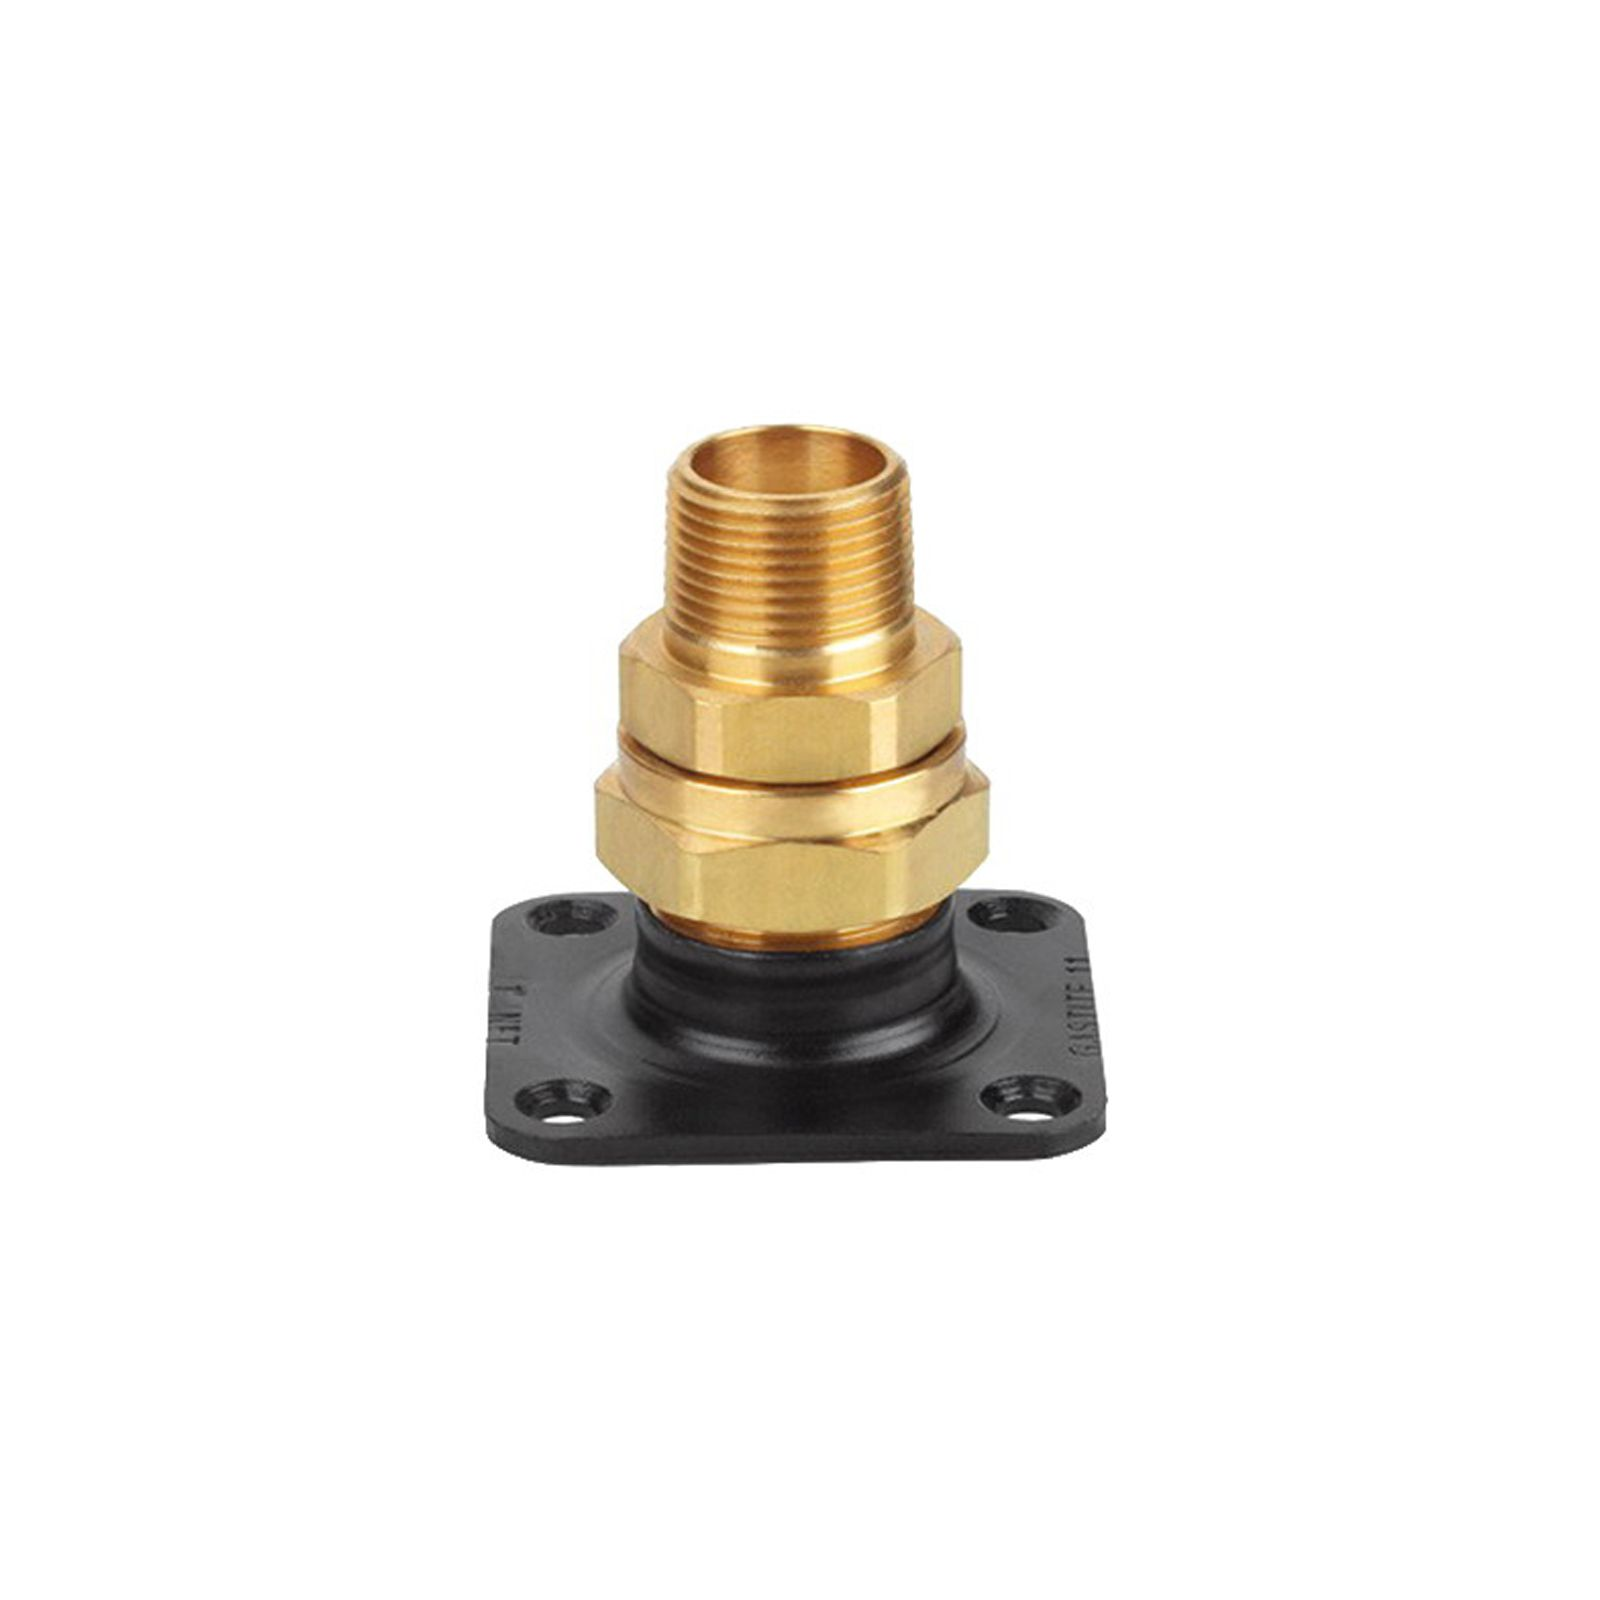 "Gastite XR3TRM-8-12 - 1/2"" XR3 Termination Fitting With Square Flange, 1/2"" NPT"